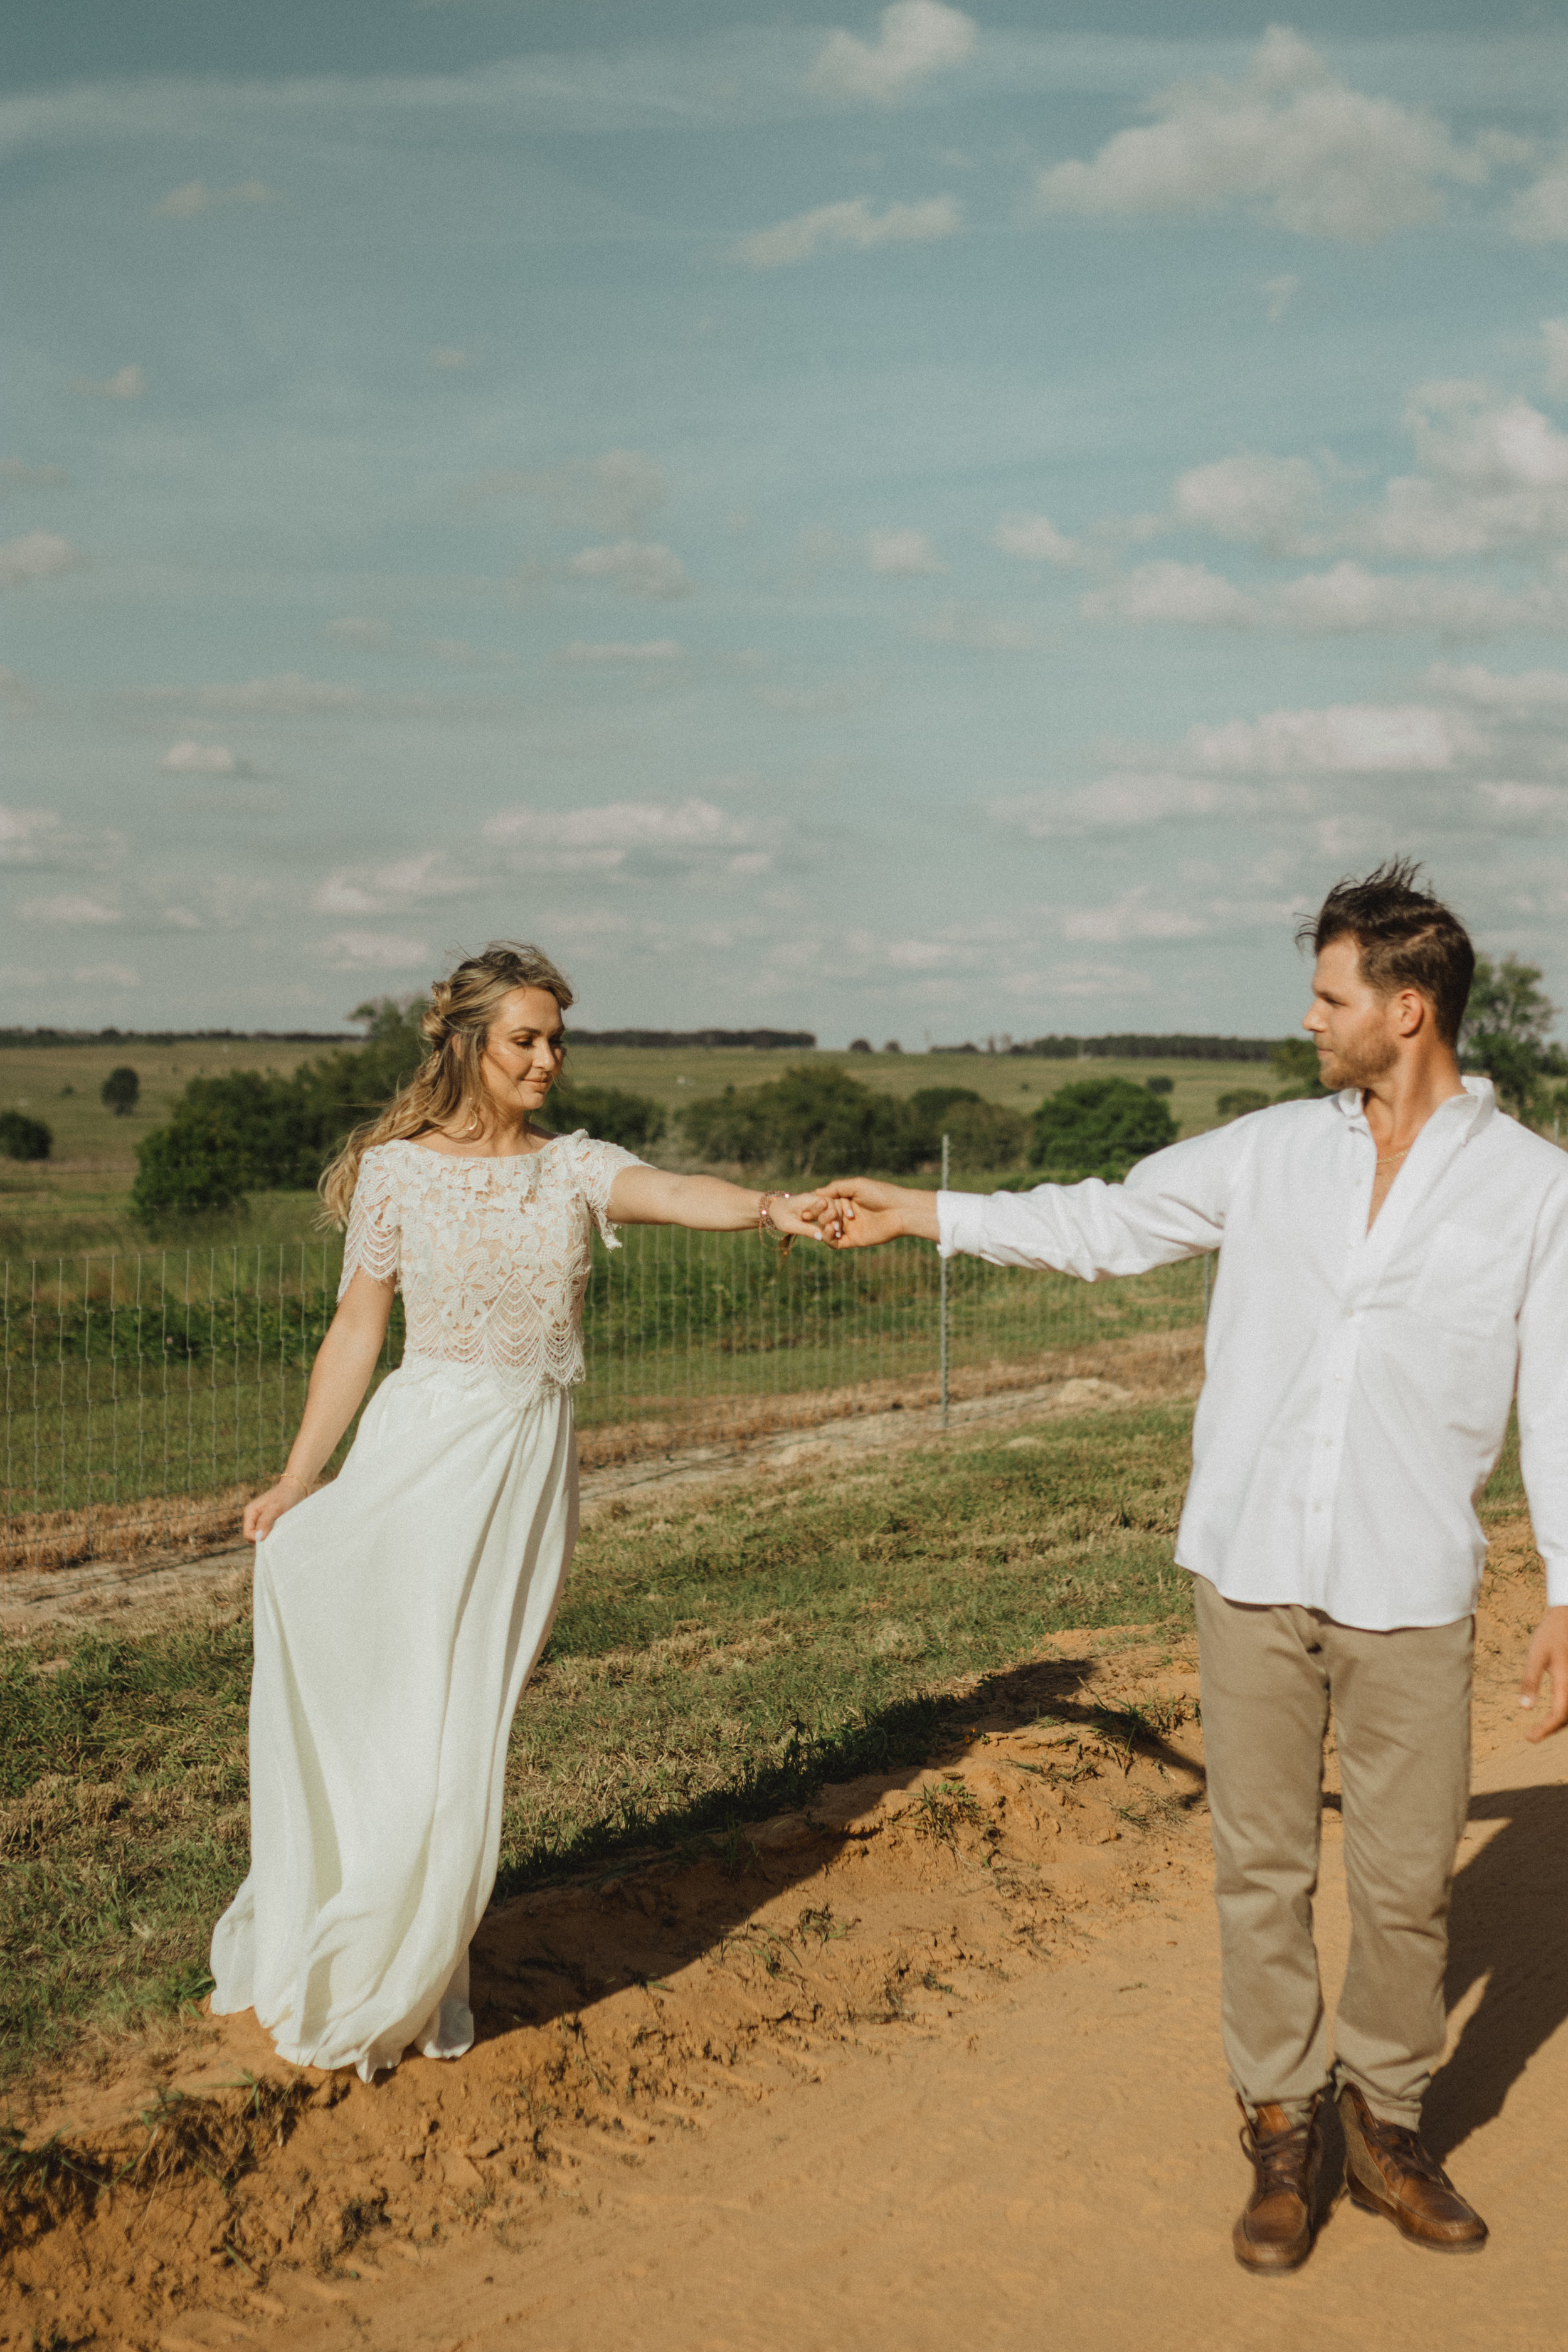 Boho Elopement | Styled Elopement | #thegatheredgals